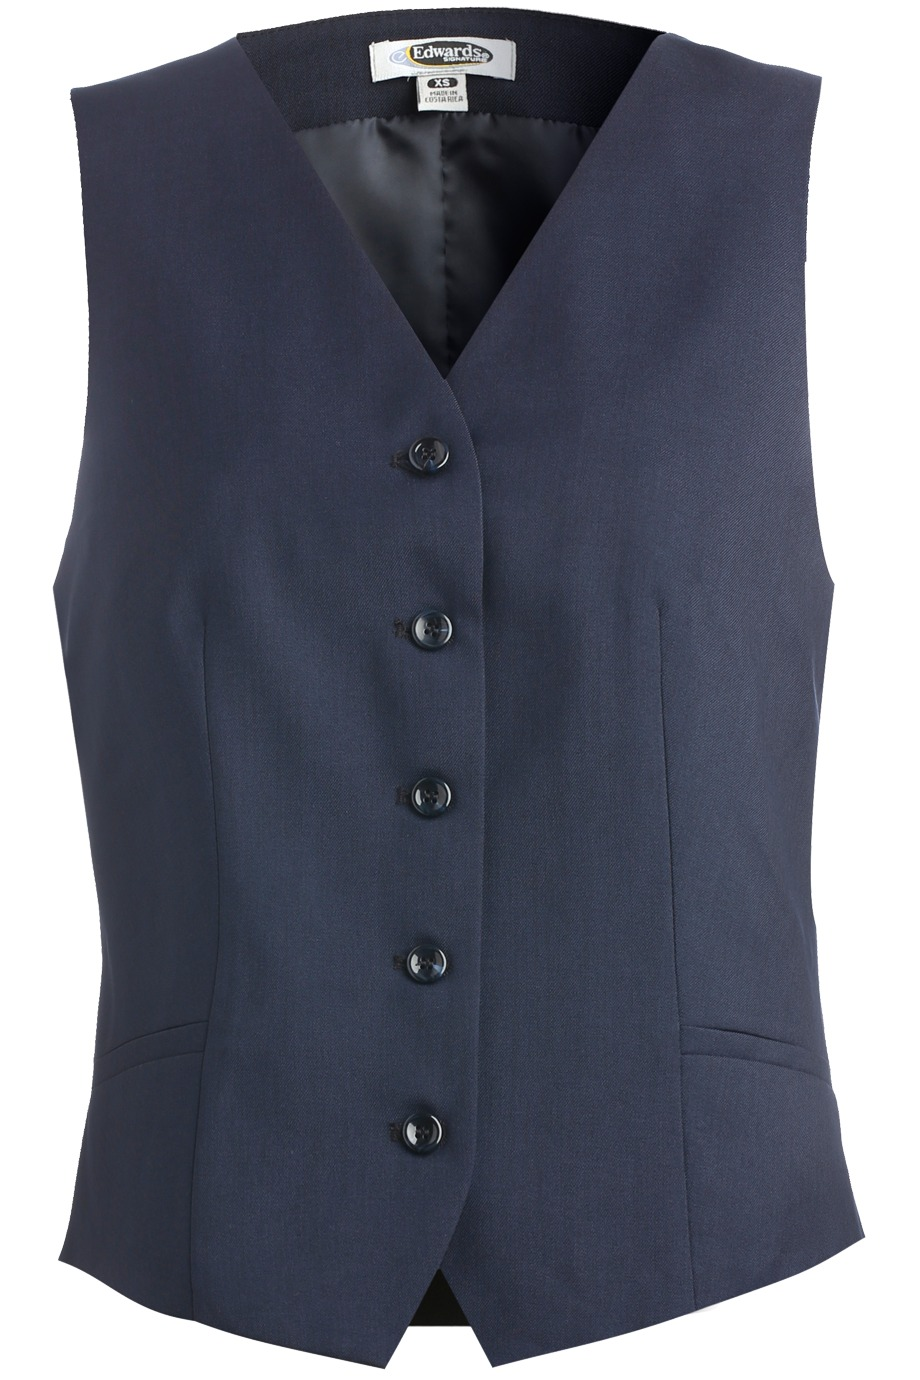 Edwards Garment 7526 - Synergy Washable Vest